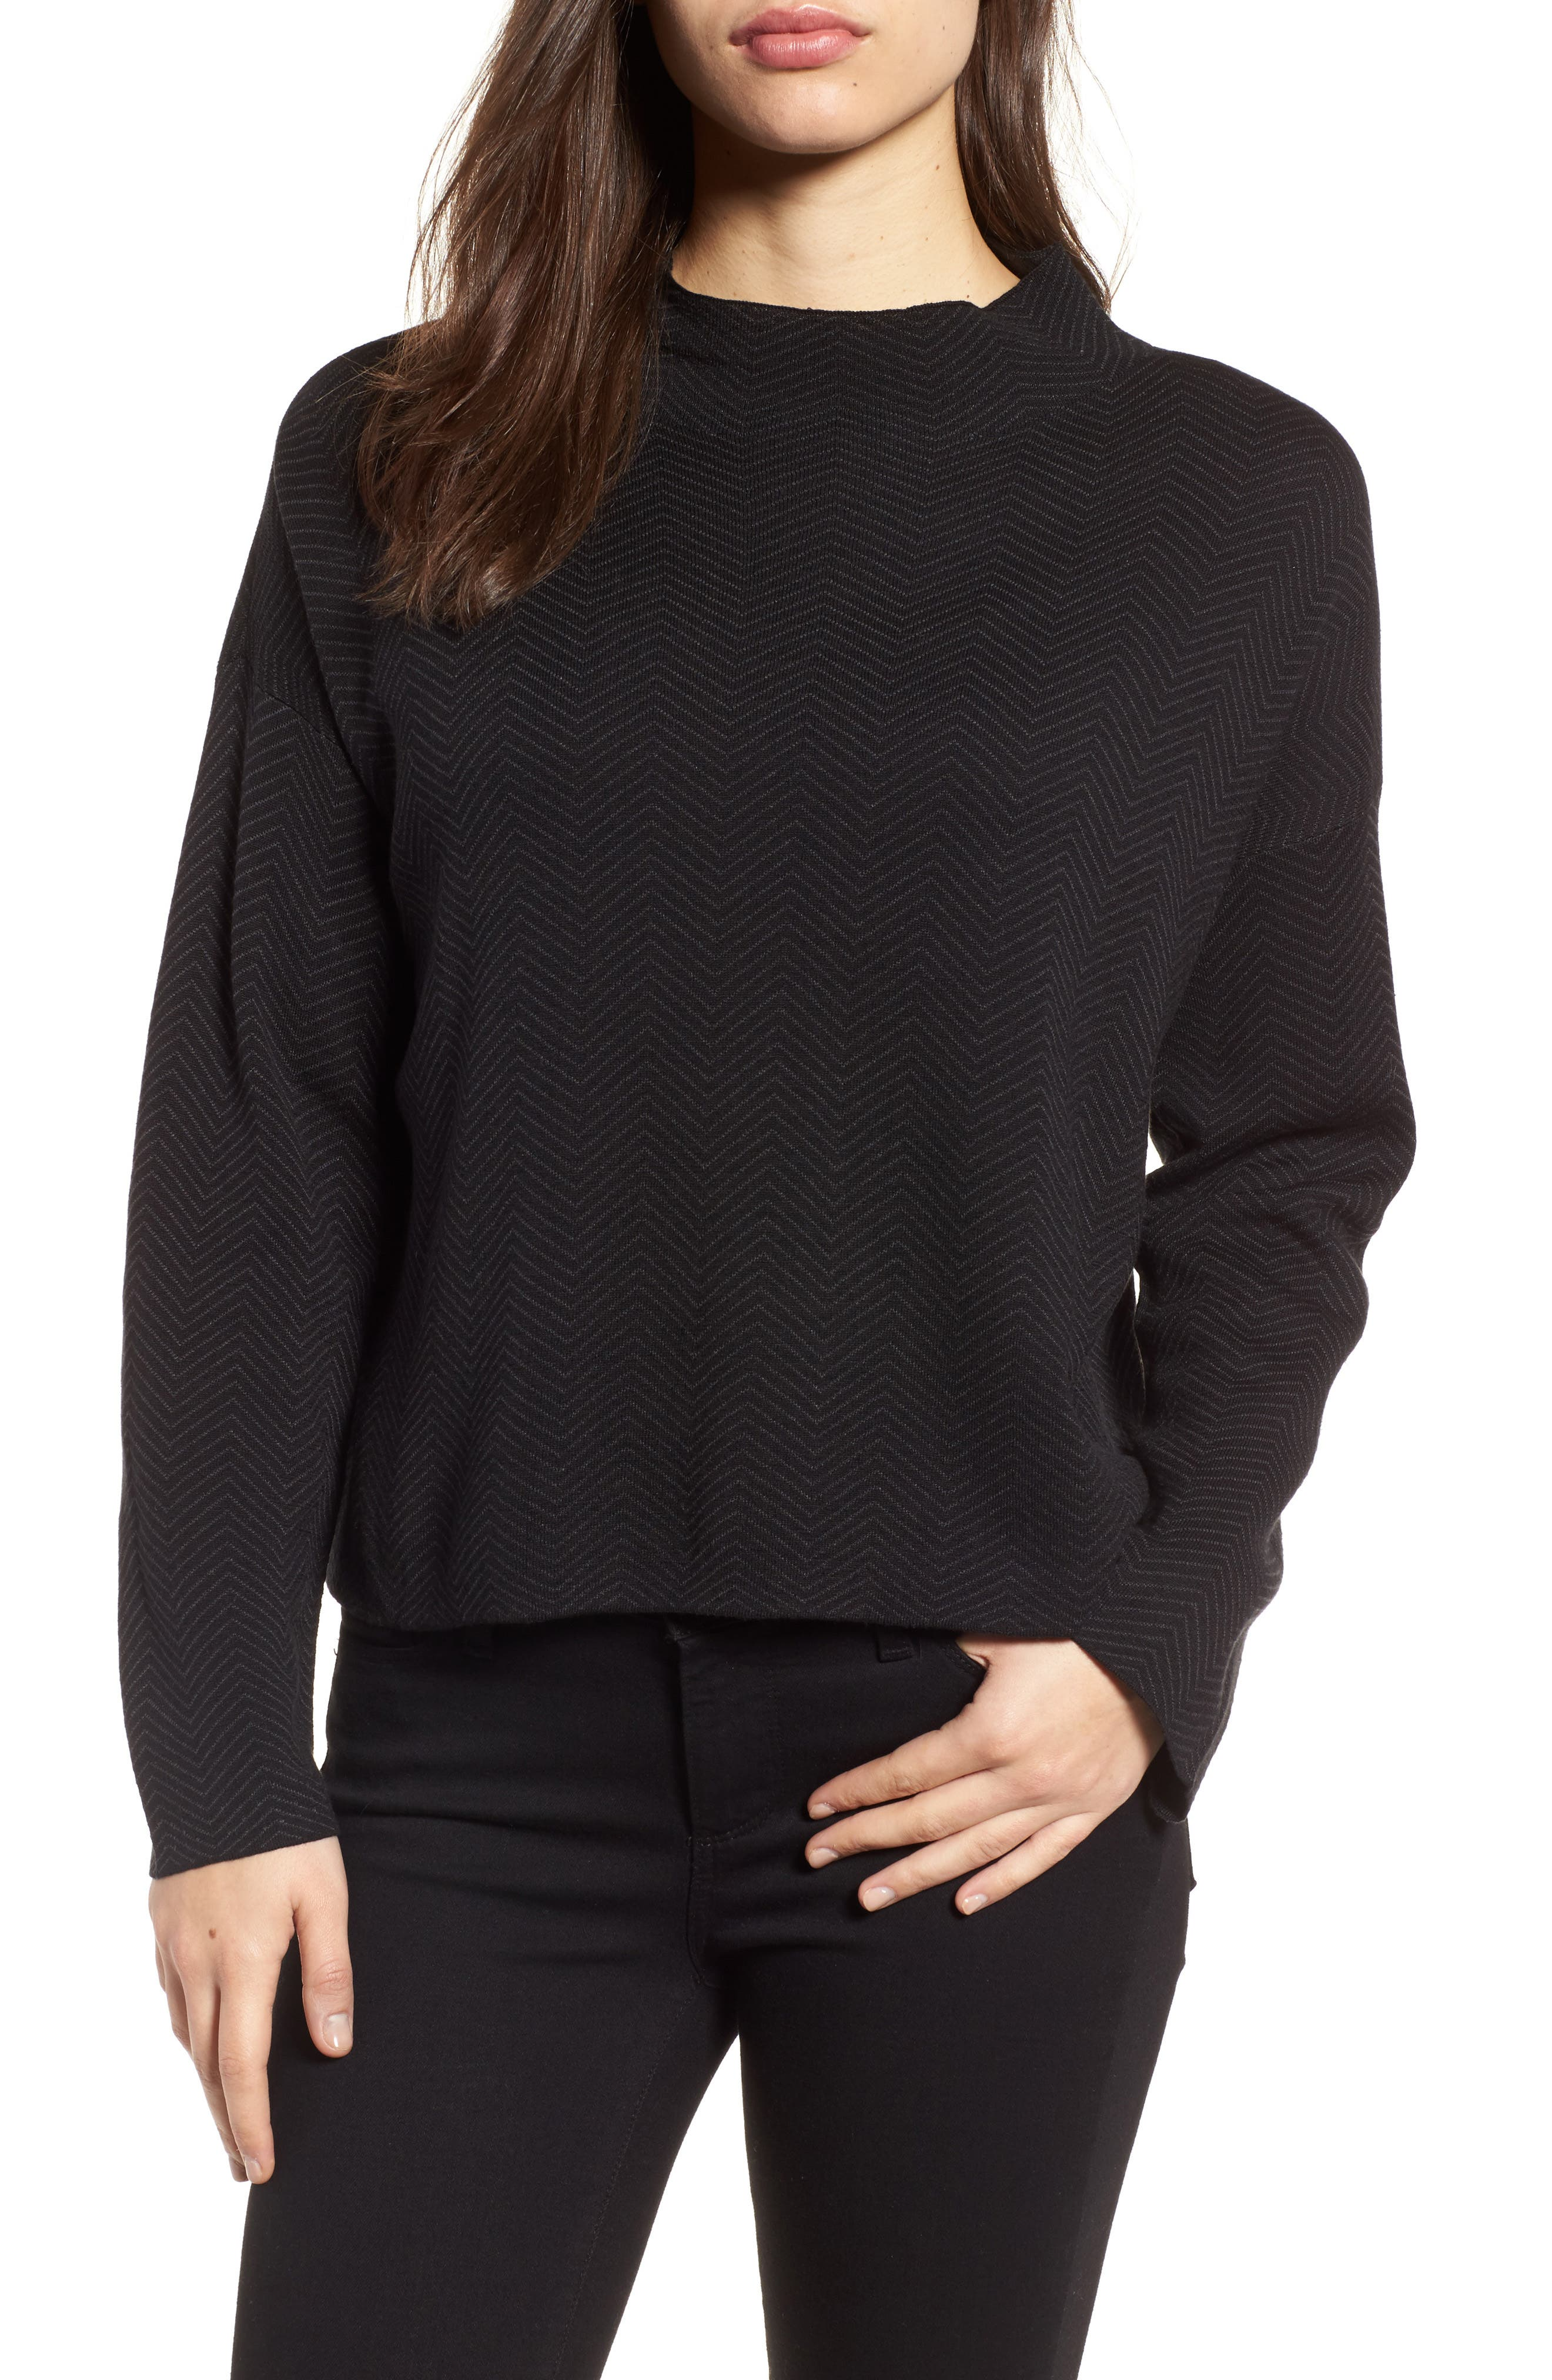 Silk & Organic Cotton Jacquard Top,                         Main,                         color, Black Charcoal